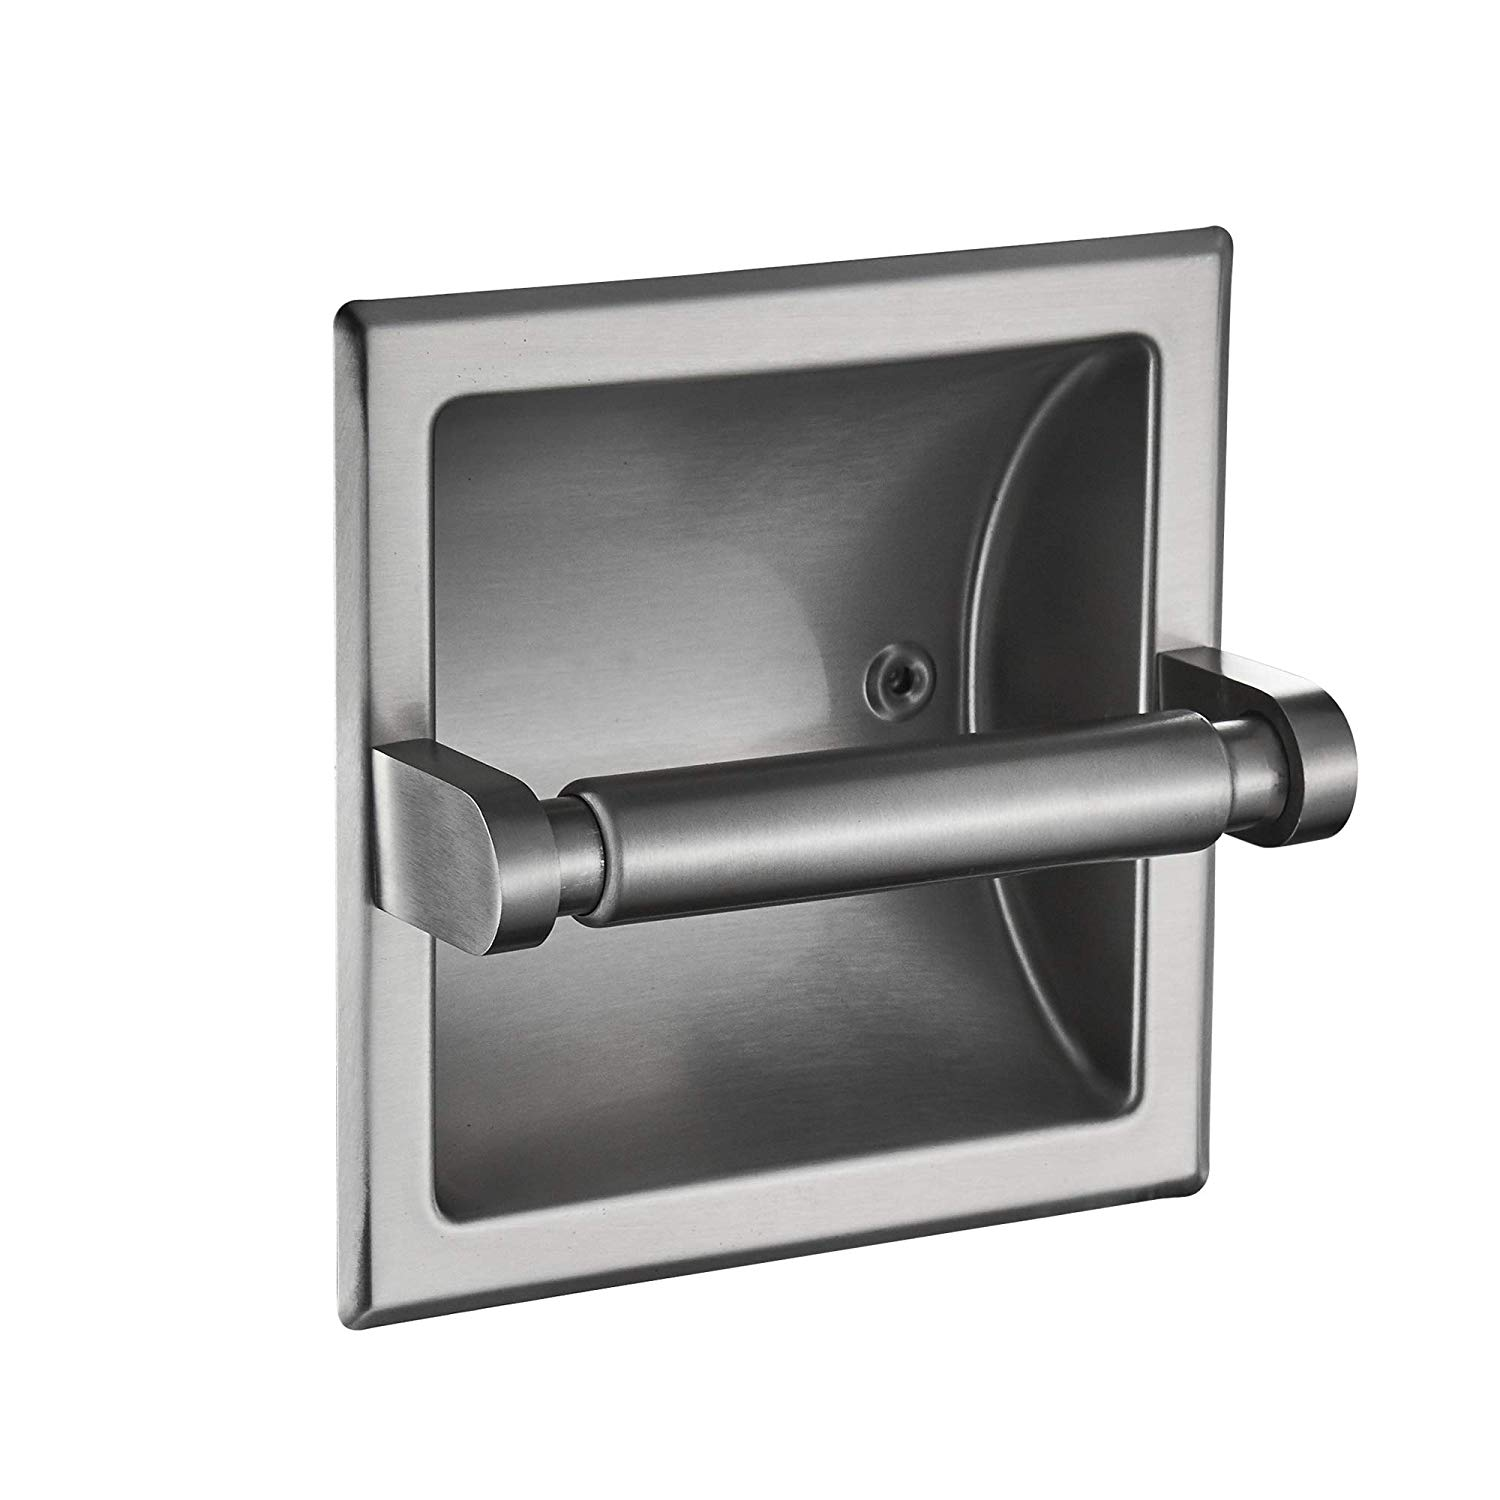 Get Quotations Junsun Brushed Nickel Recessed Toilet Paper Holder Tissue Roll All Stainless Steel Construction